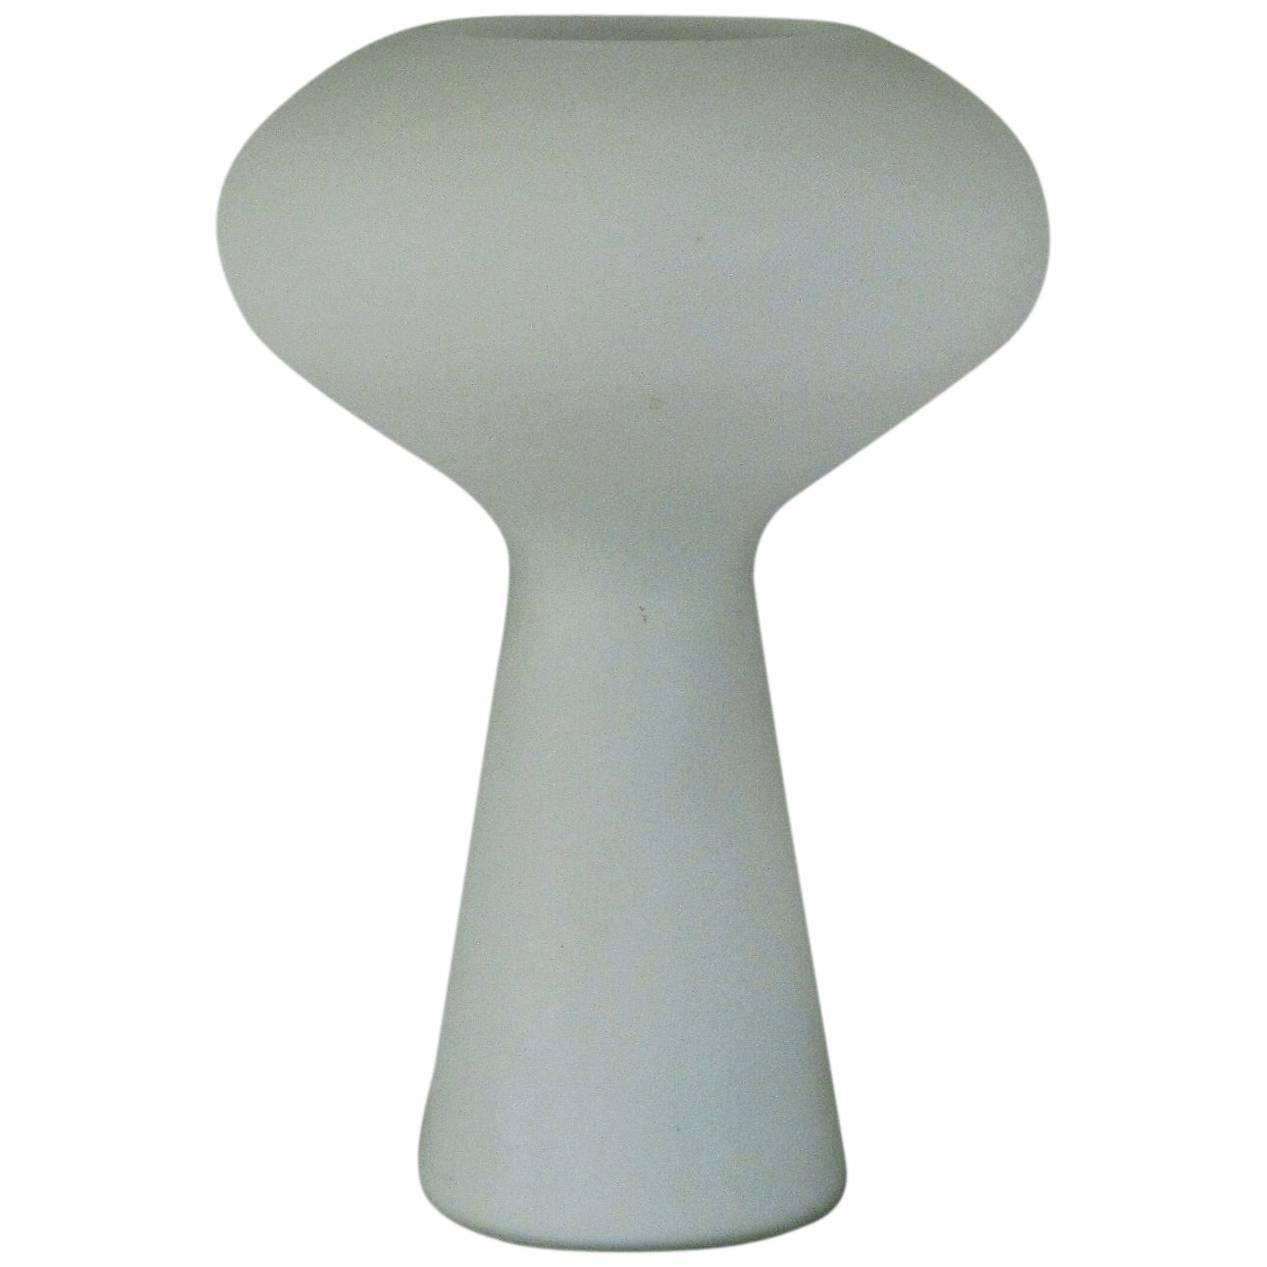 italian made frosted glass mushroom lamp in the lisa johansson  - italian made frosted glass mushroom lamp in the lisa johanssonpape styleat stdibs